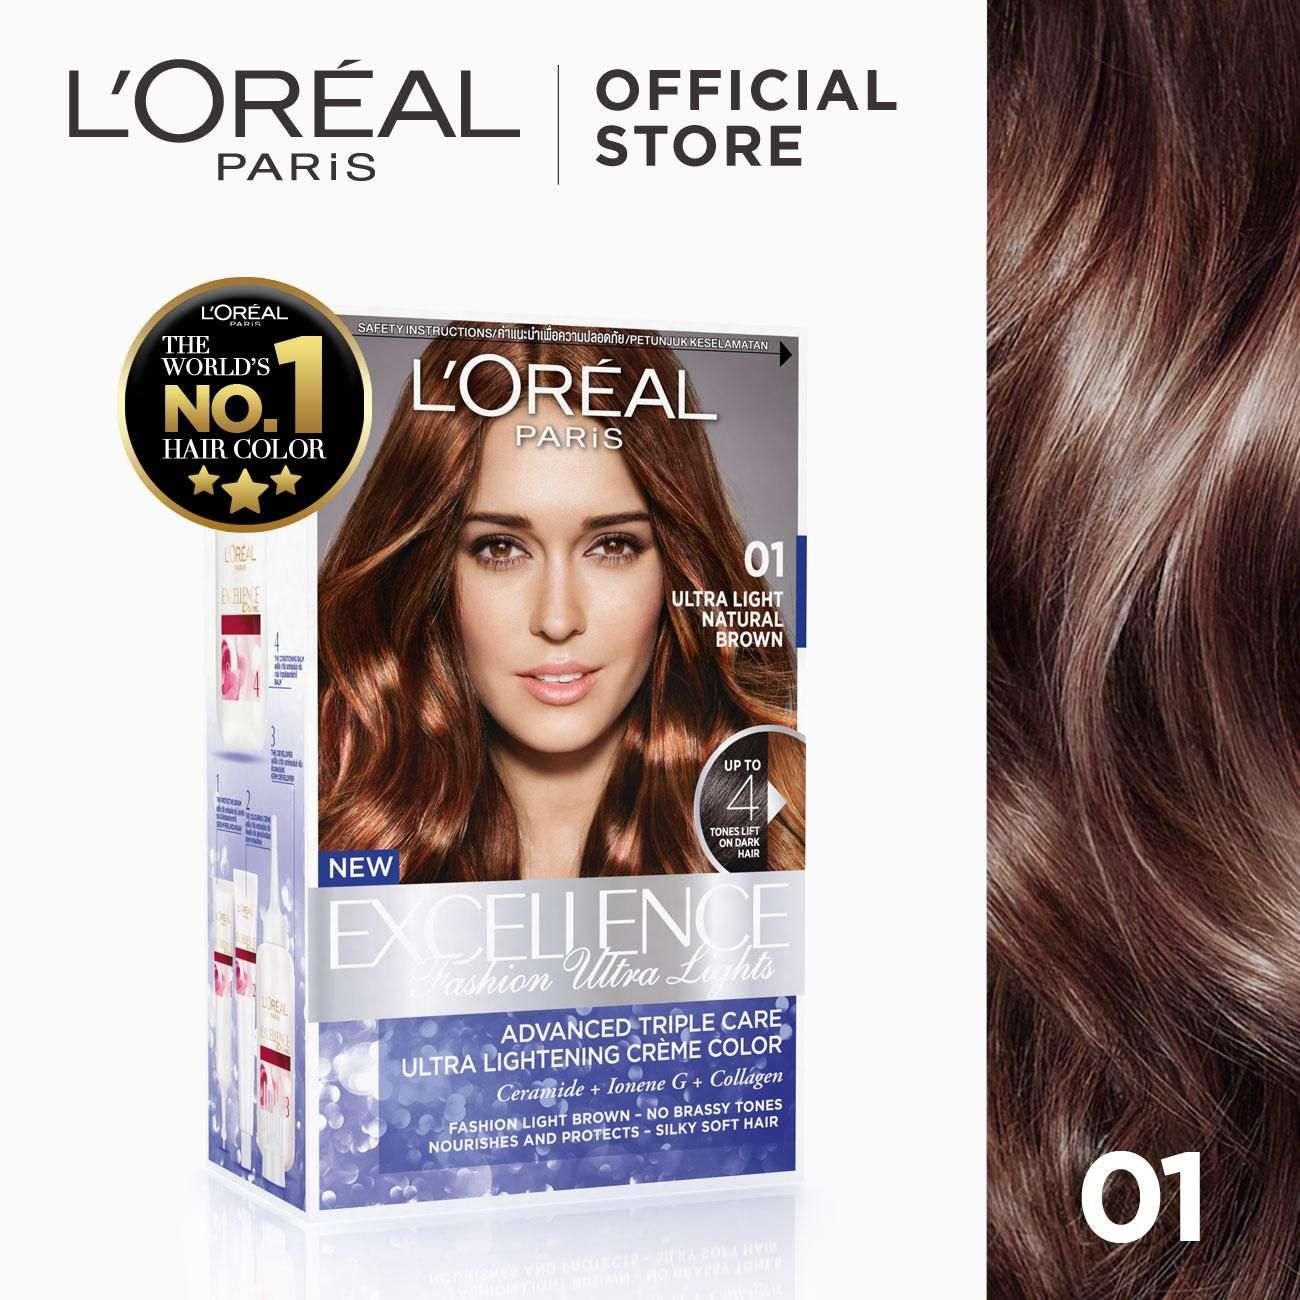 Excellence Fashion Ultra Lights Hair Color 03 Ash Brown World S No 1 By L Oreal Paris W Protective Seru In 2020 Hair Color Ash Brown Hair Color Loreal Hair Color